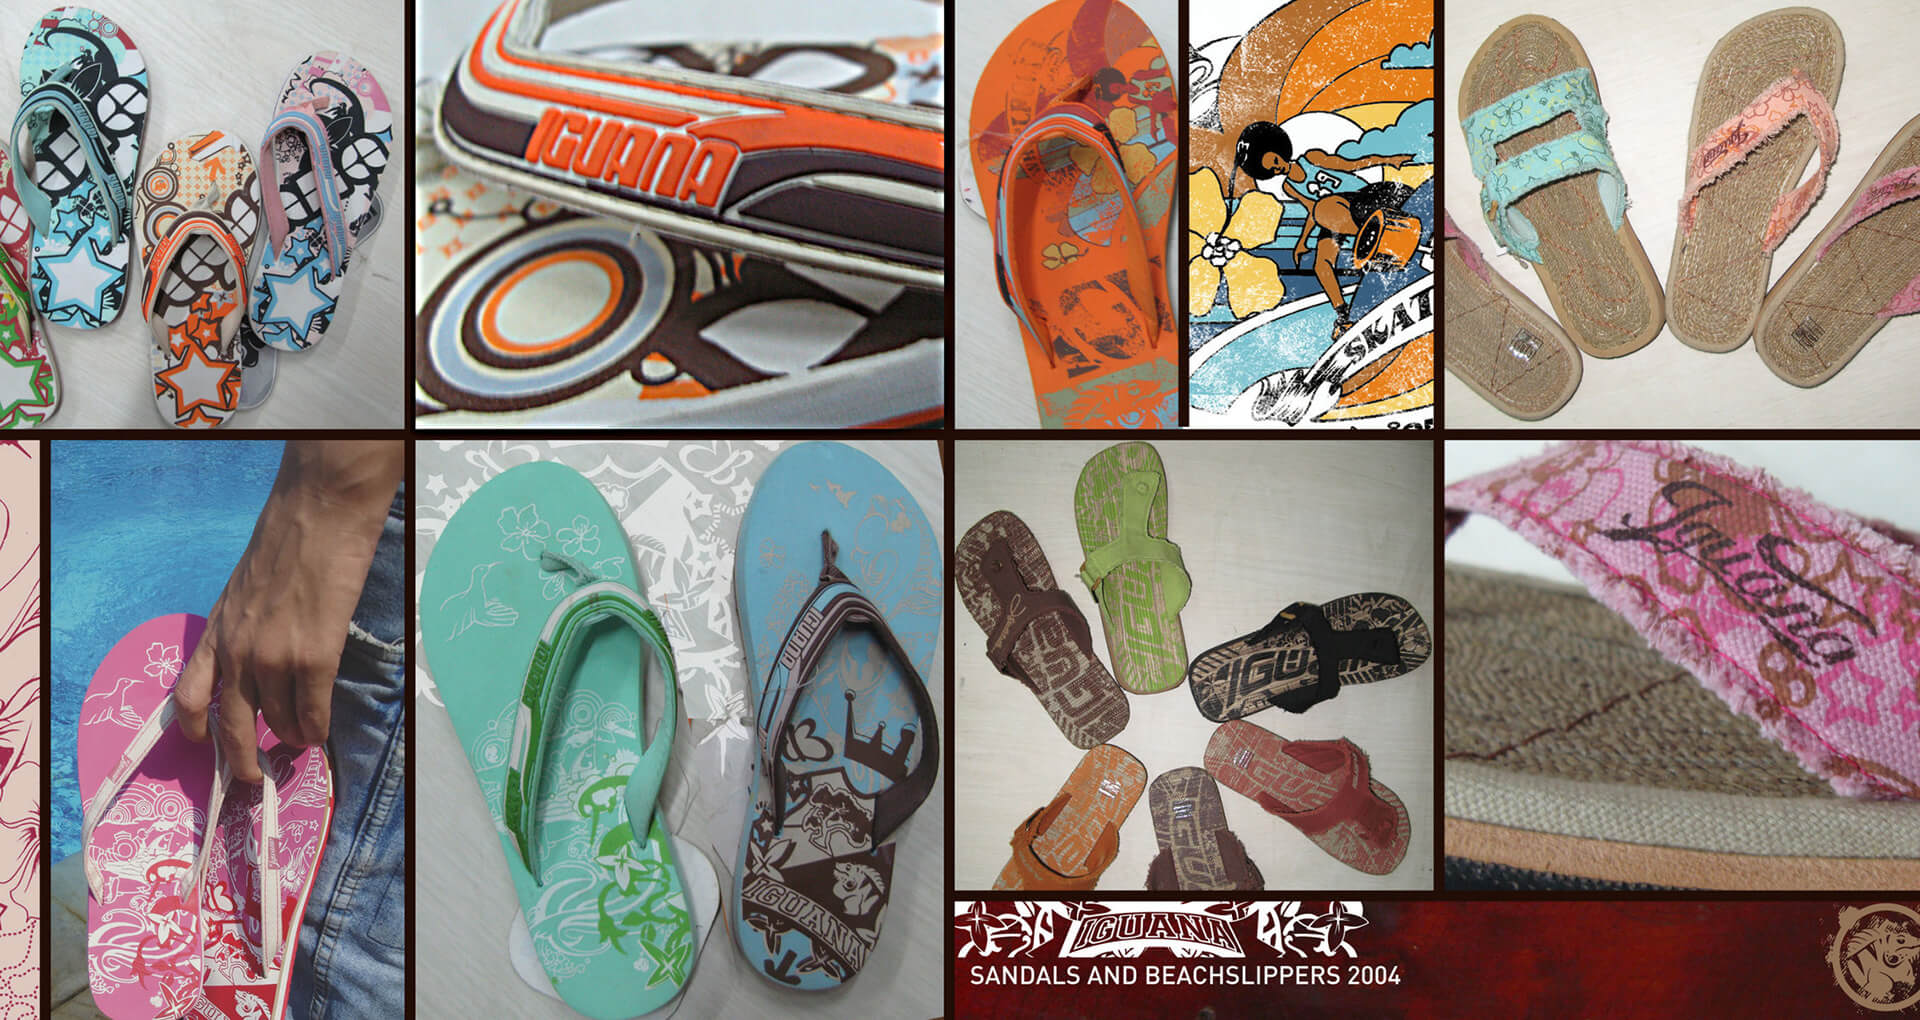 product design snowboards surfbaords hats gloves bags shoes sandals 4